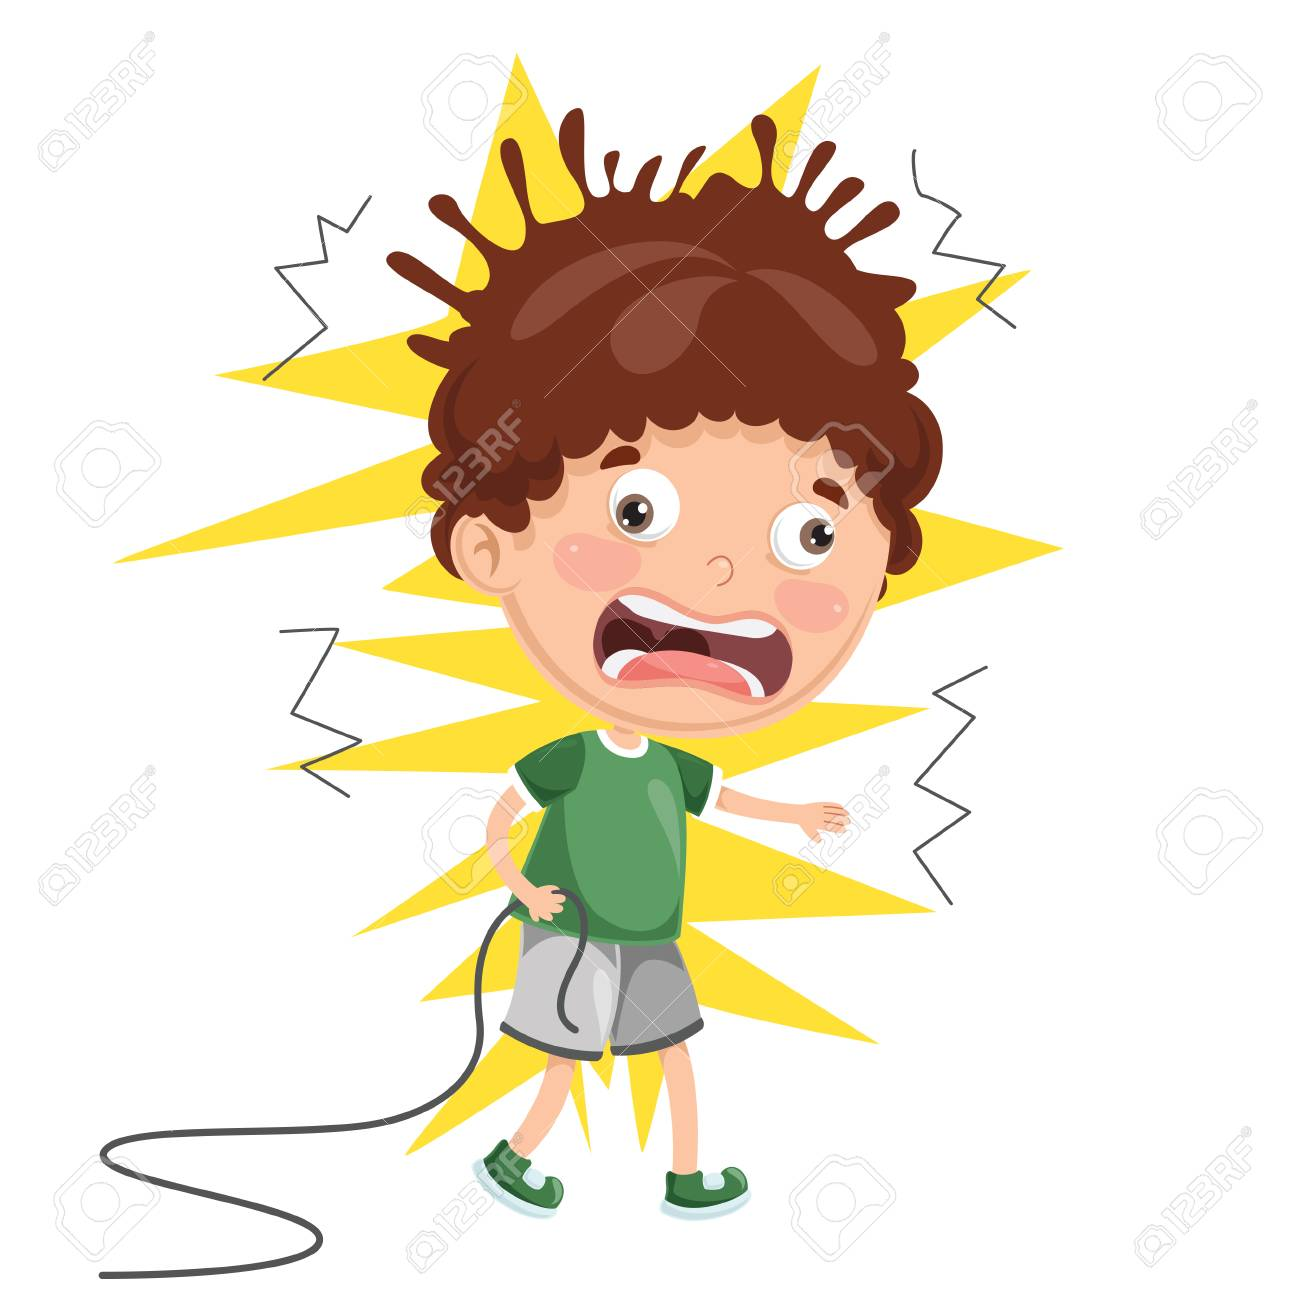 Vector Illustration Of Kid With Electric Shock - 97622911